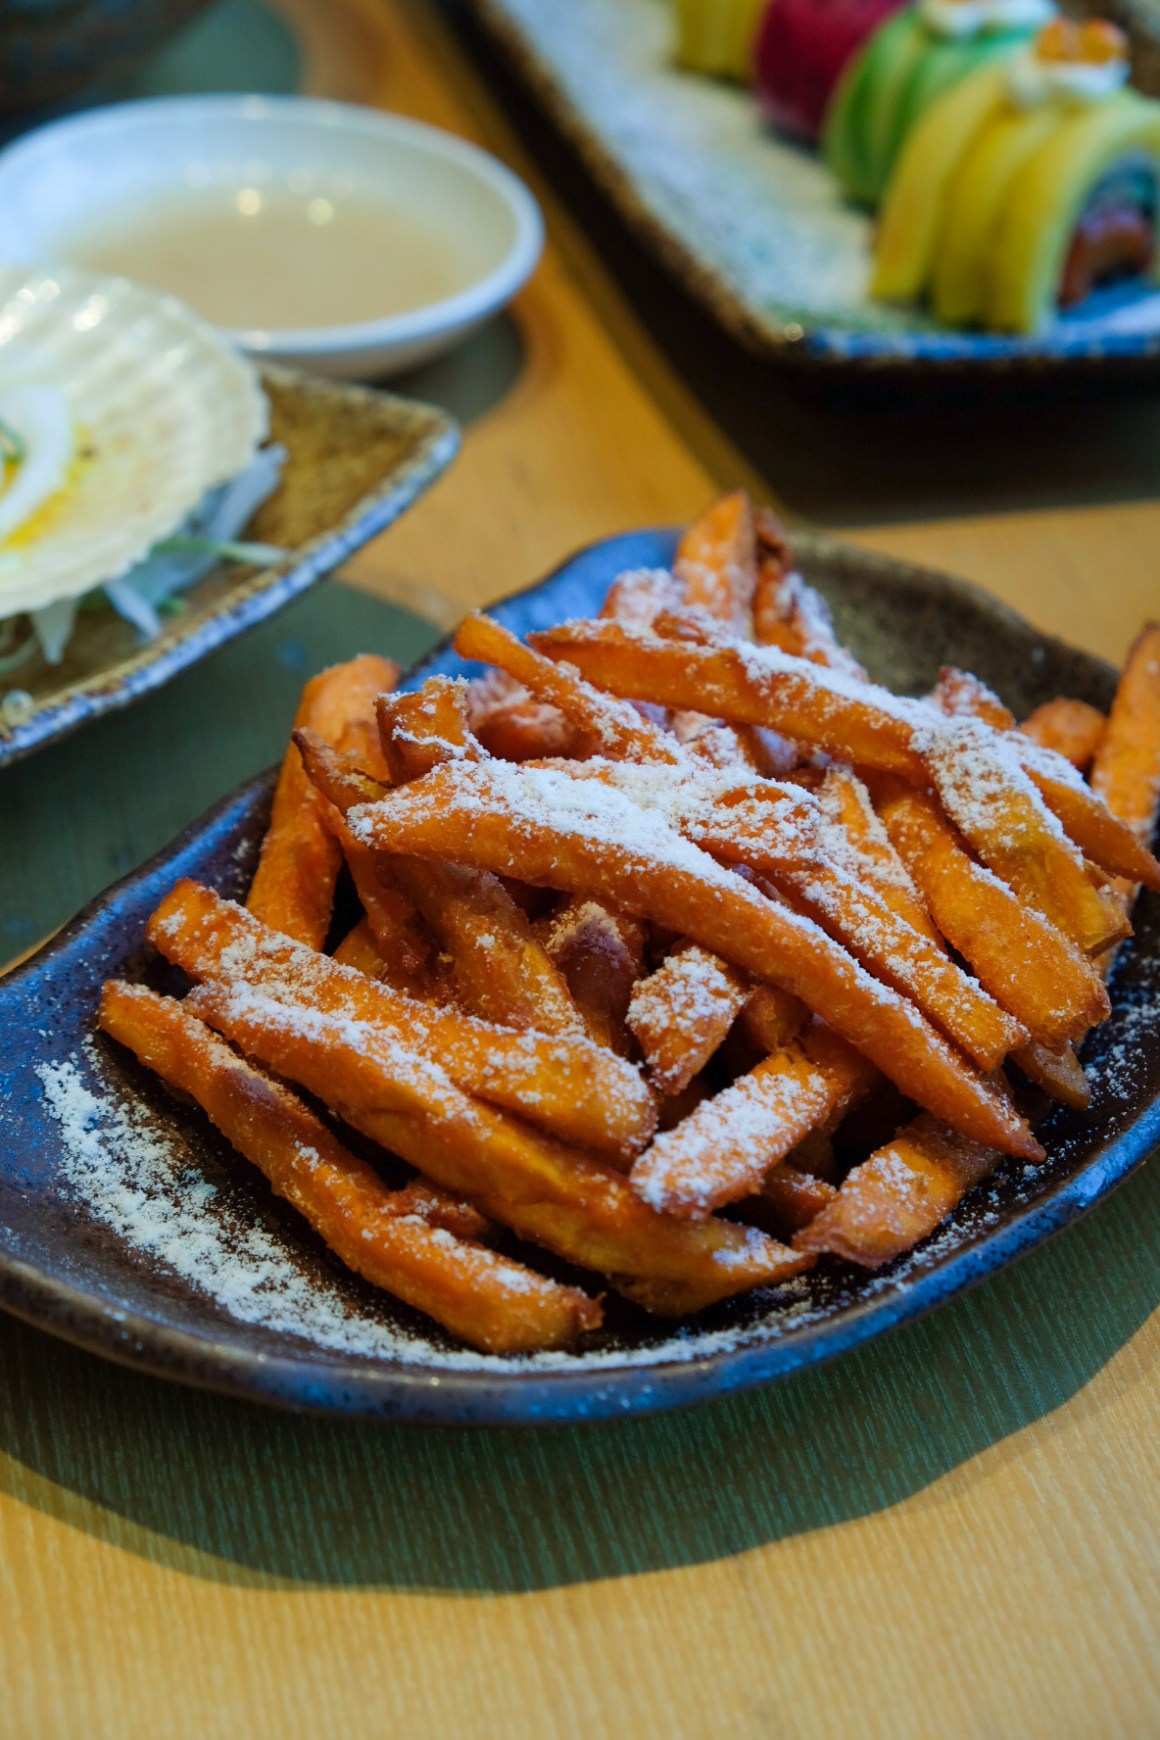 Sushi Tei's New Autumn Menu - Truffle Sweet Potato Fries ($8.80)